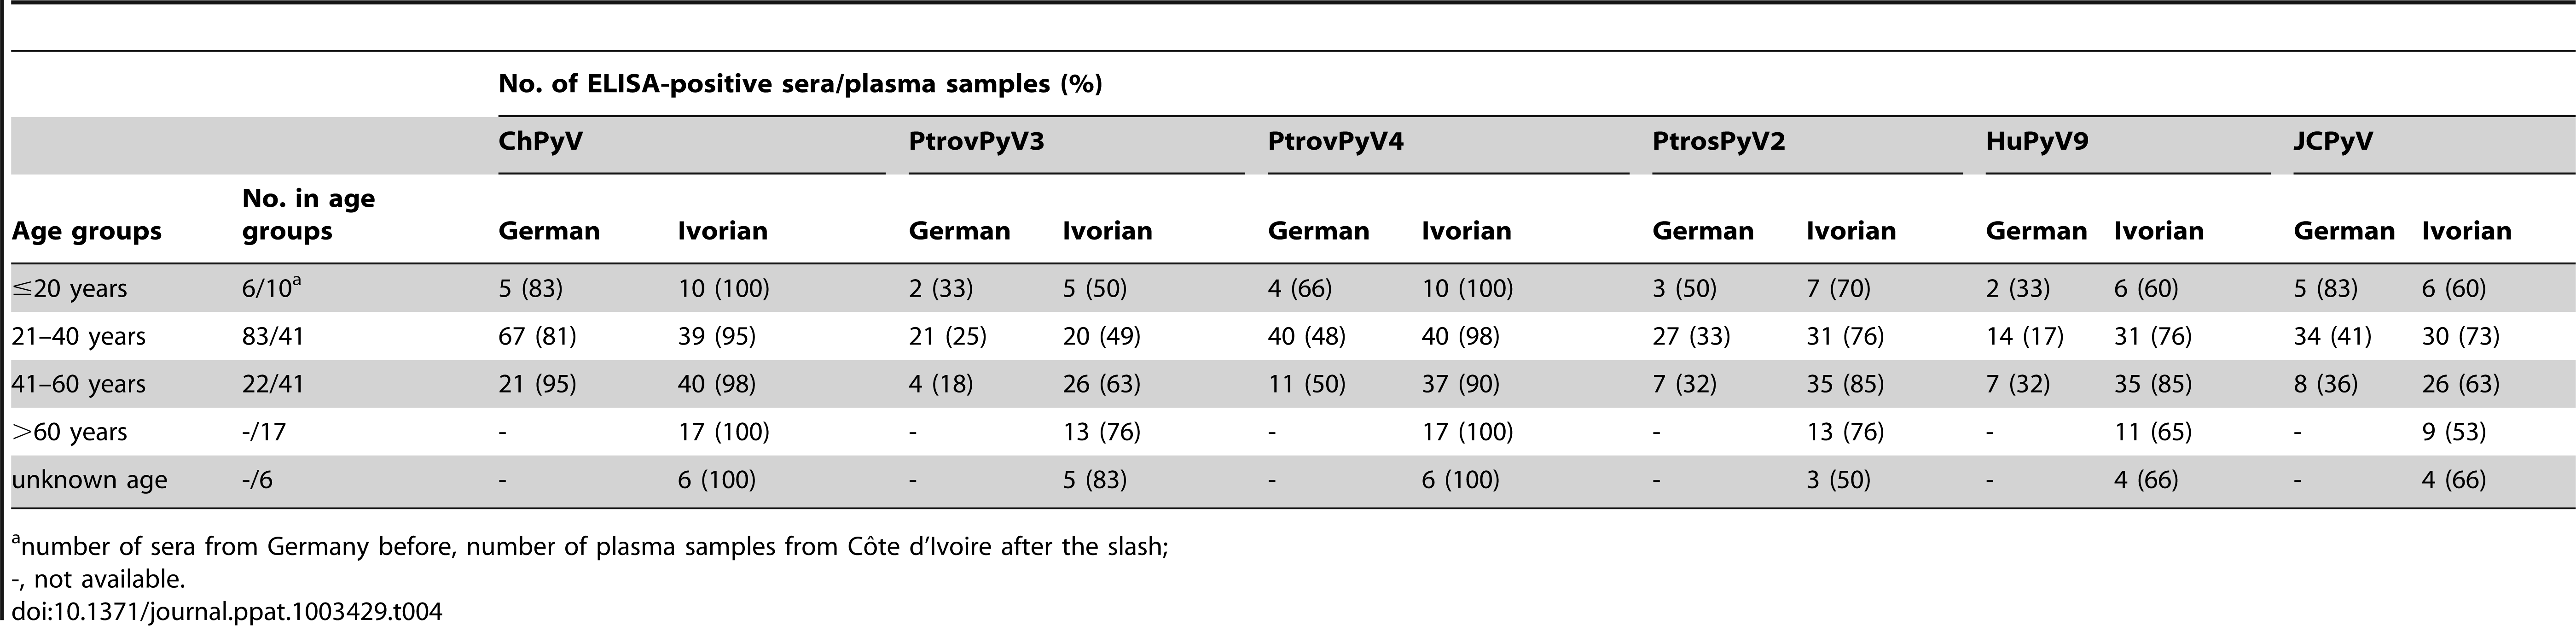 Seroreactivity of German sera and Ivorian plasma samples against polyomaviruses by age group.